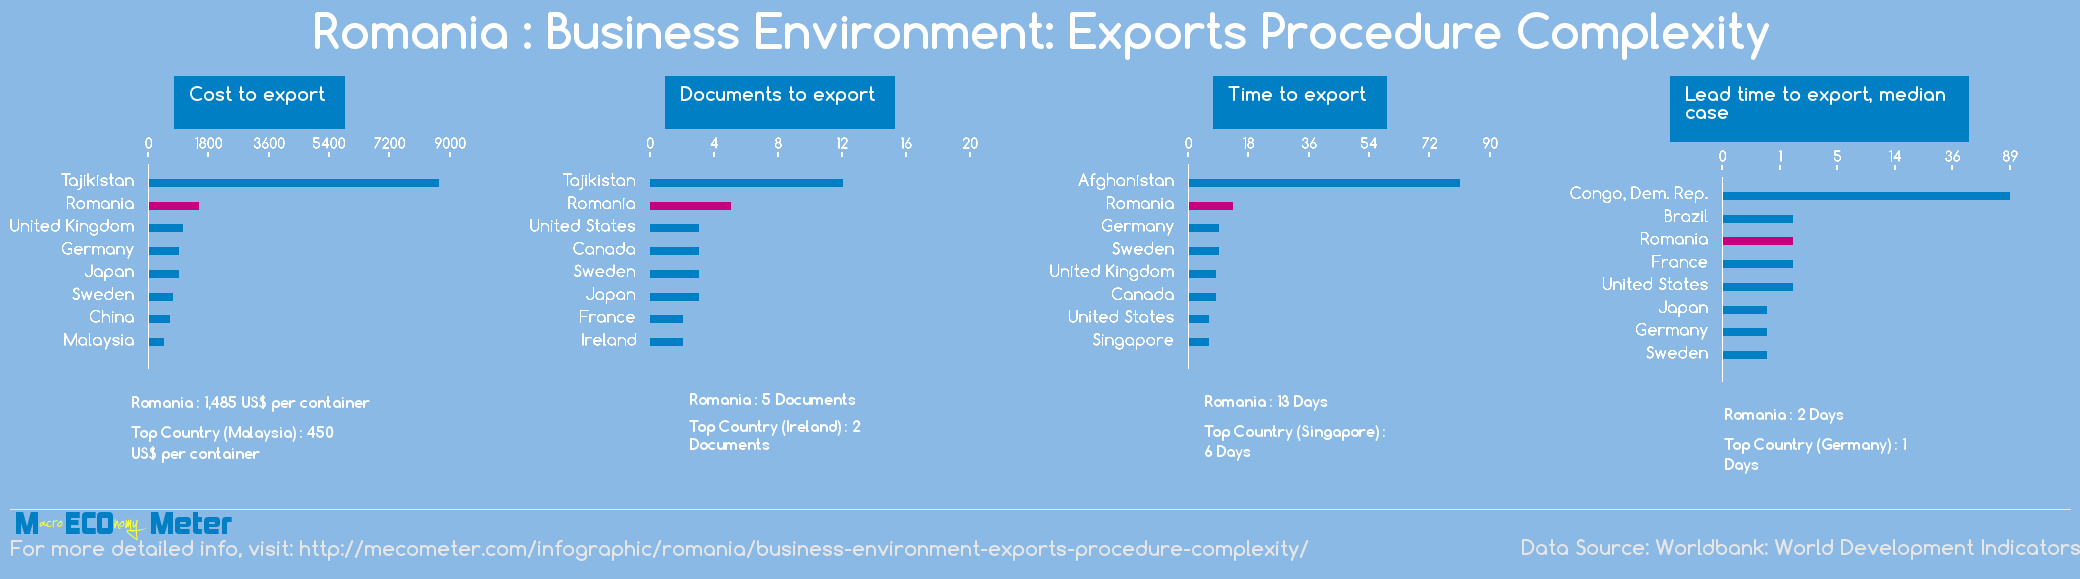 Romania : Business Environment: Exports Procedure Complexity